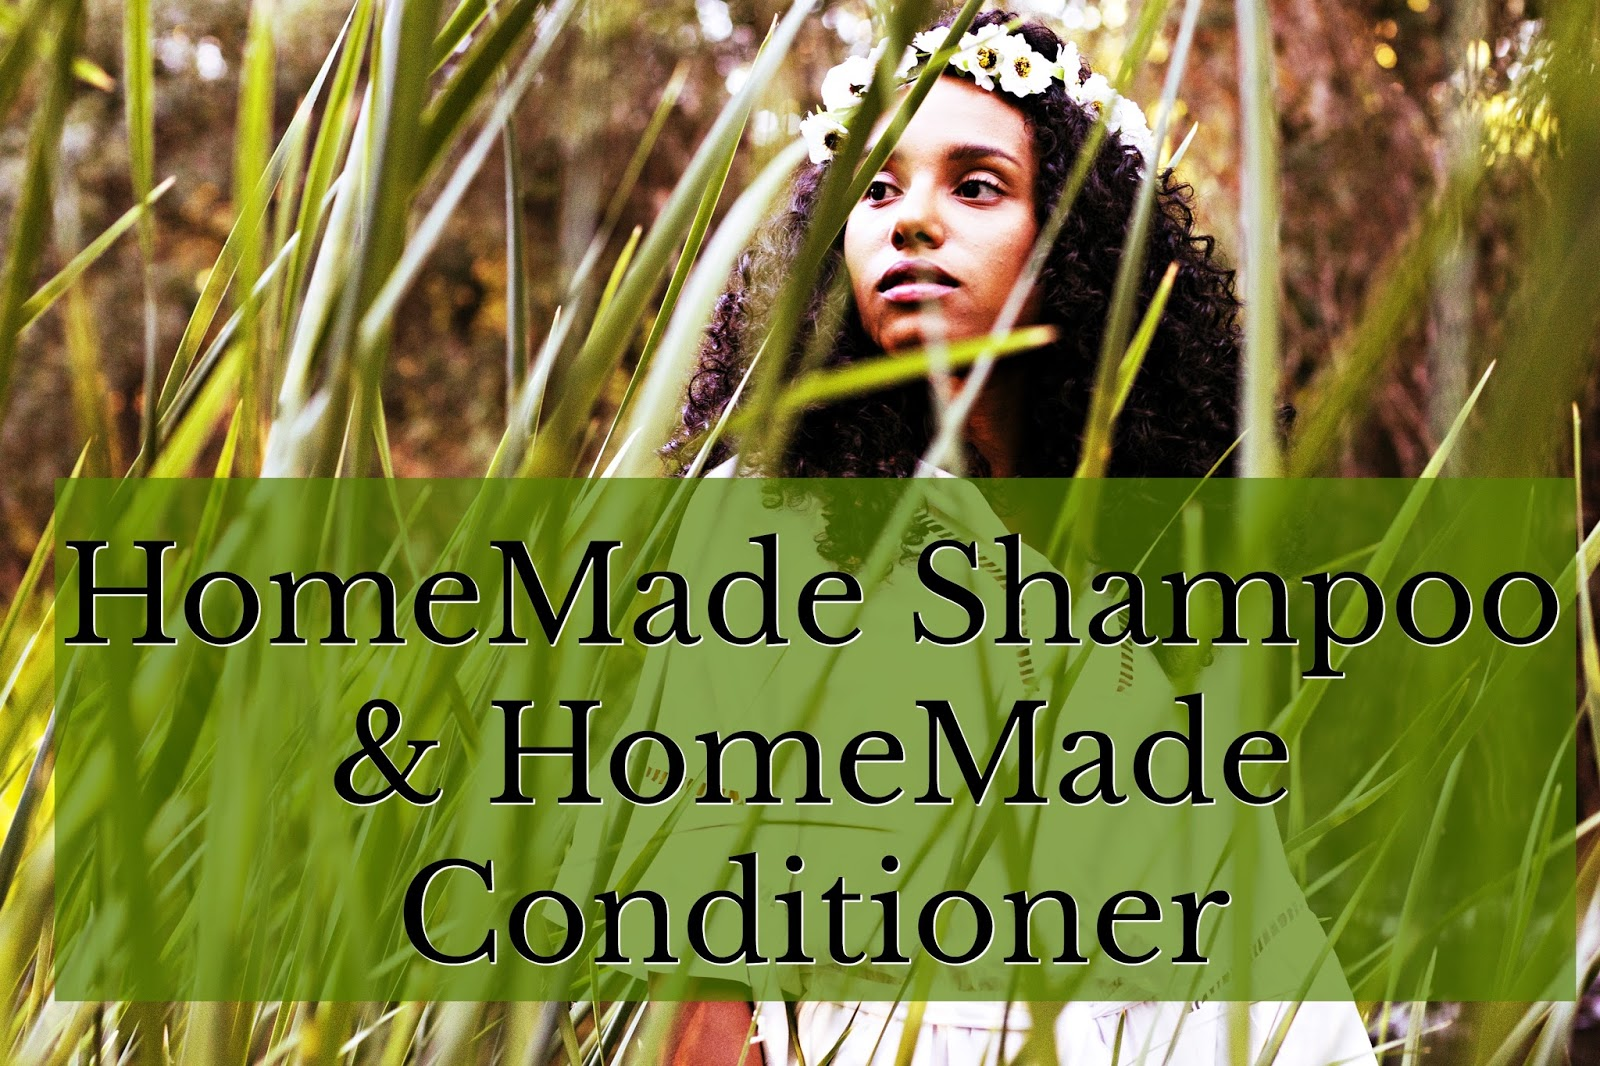 Click here to buy Dr. Bronner's Tea Tree Pure-Castile Liquid Soap to create your DIY hair recipes